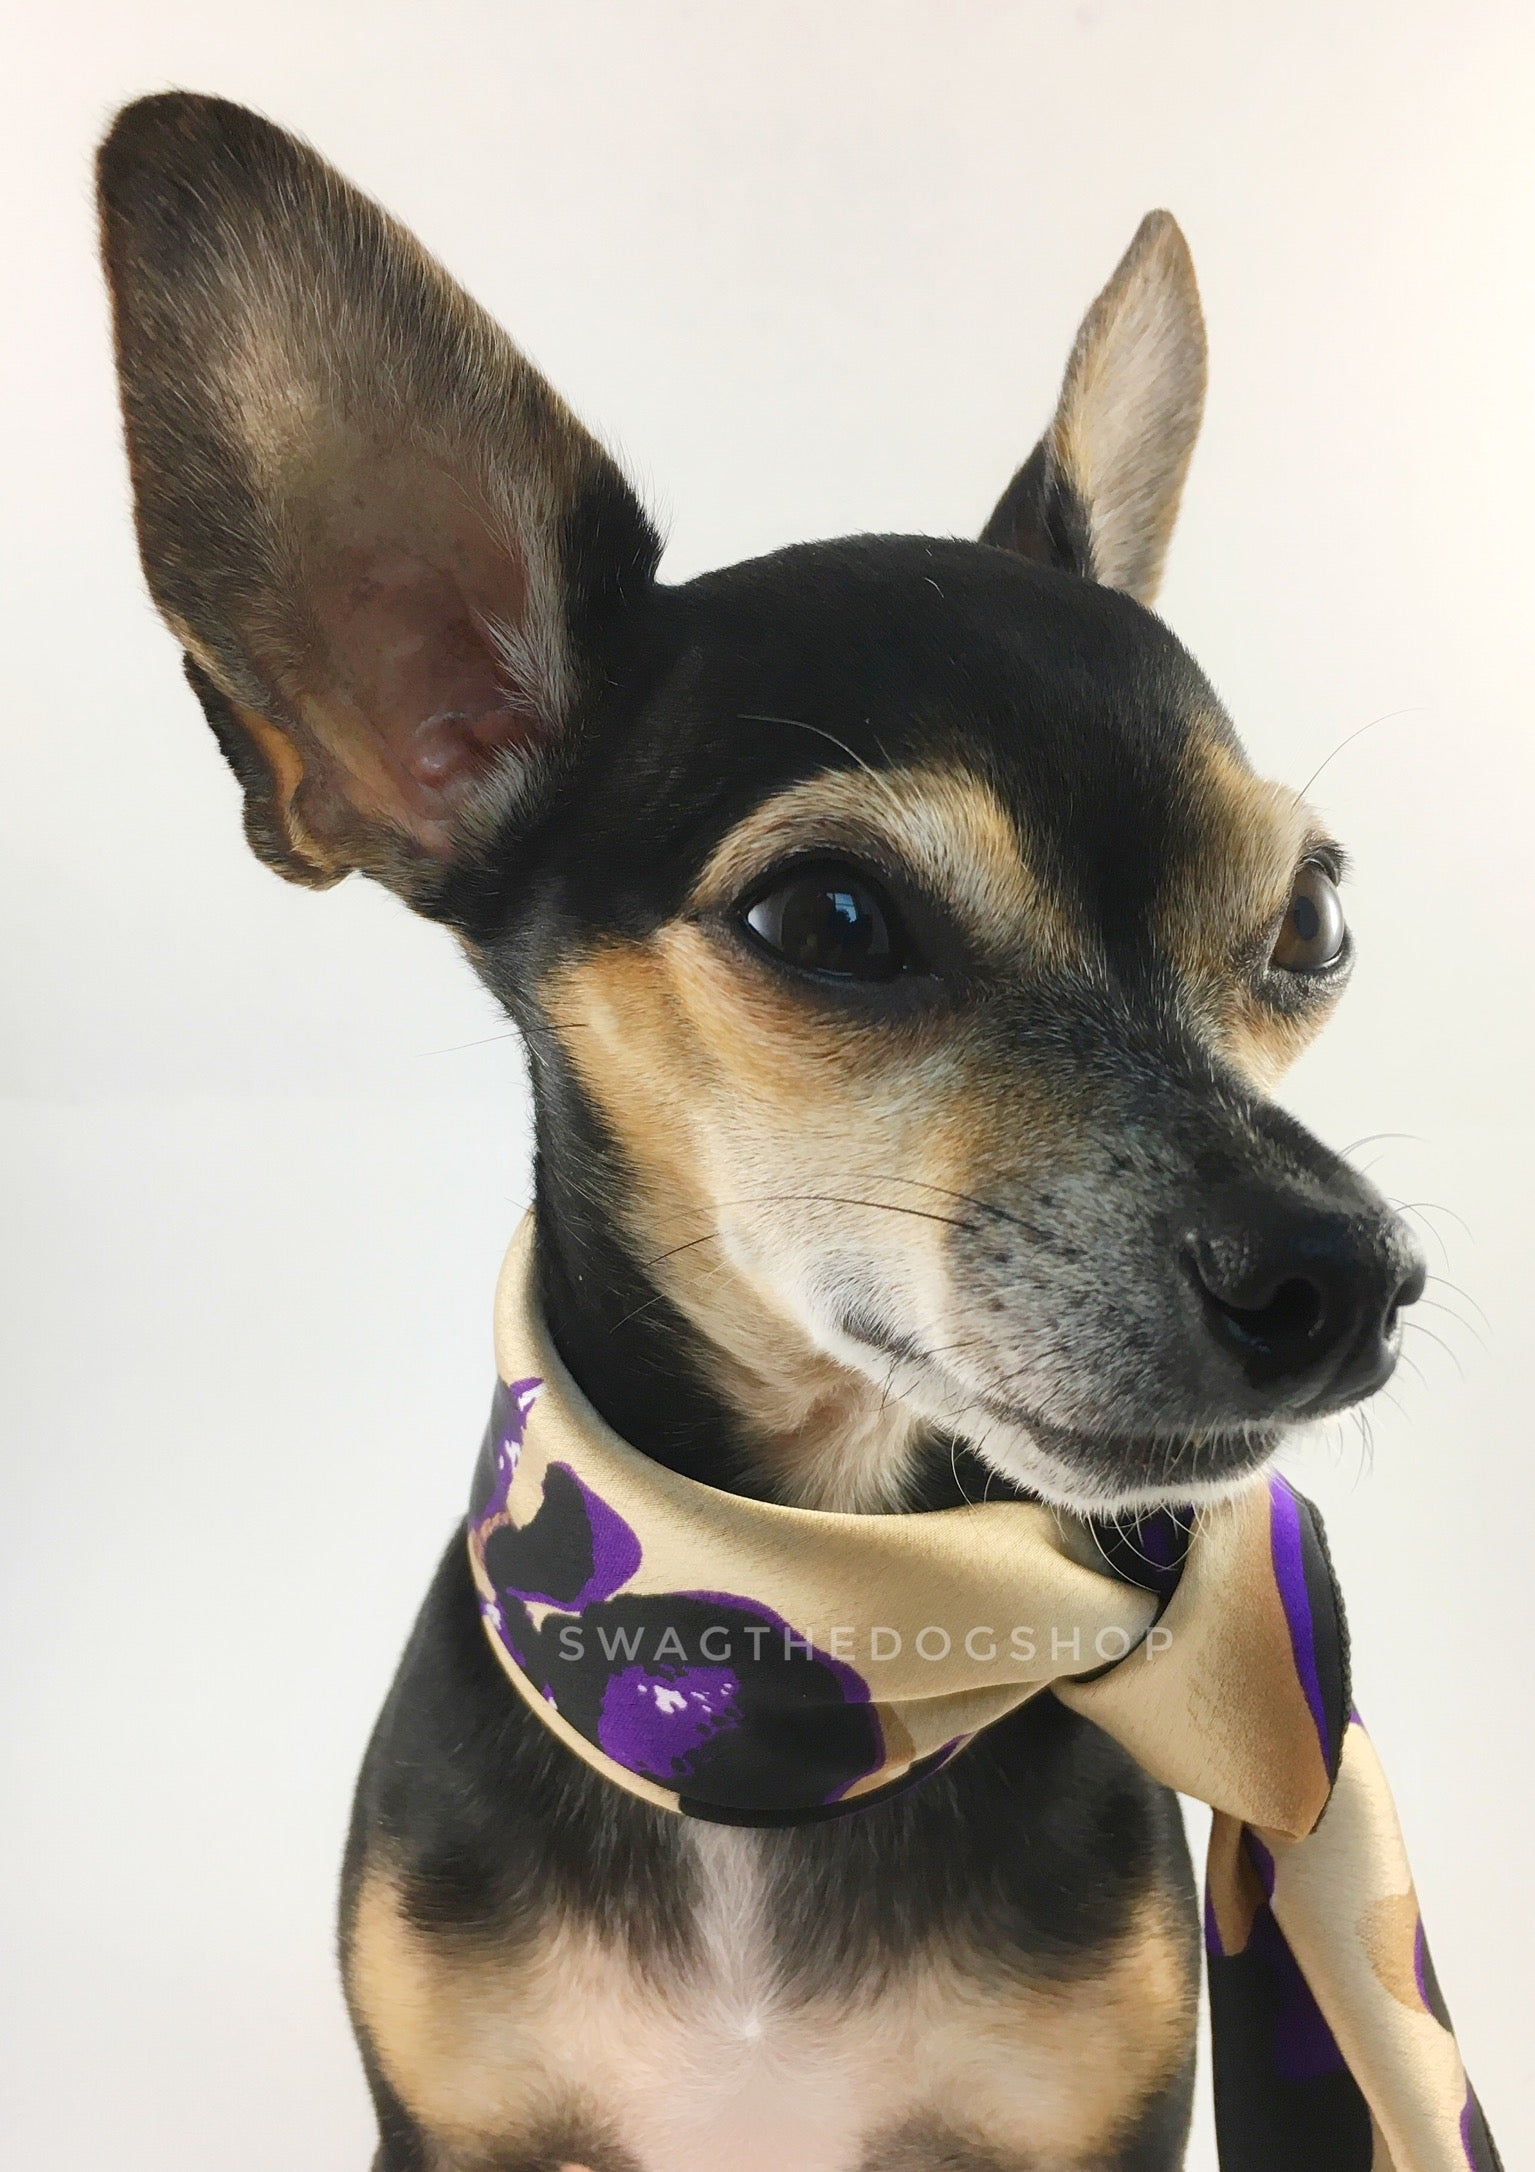 Fierce Beige with Purple Swagdana Scarf - Bust of Cute Chihuahua Wearing Swagdana Scarf as Neckerchief. Dog Bandana. Dog Scarf